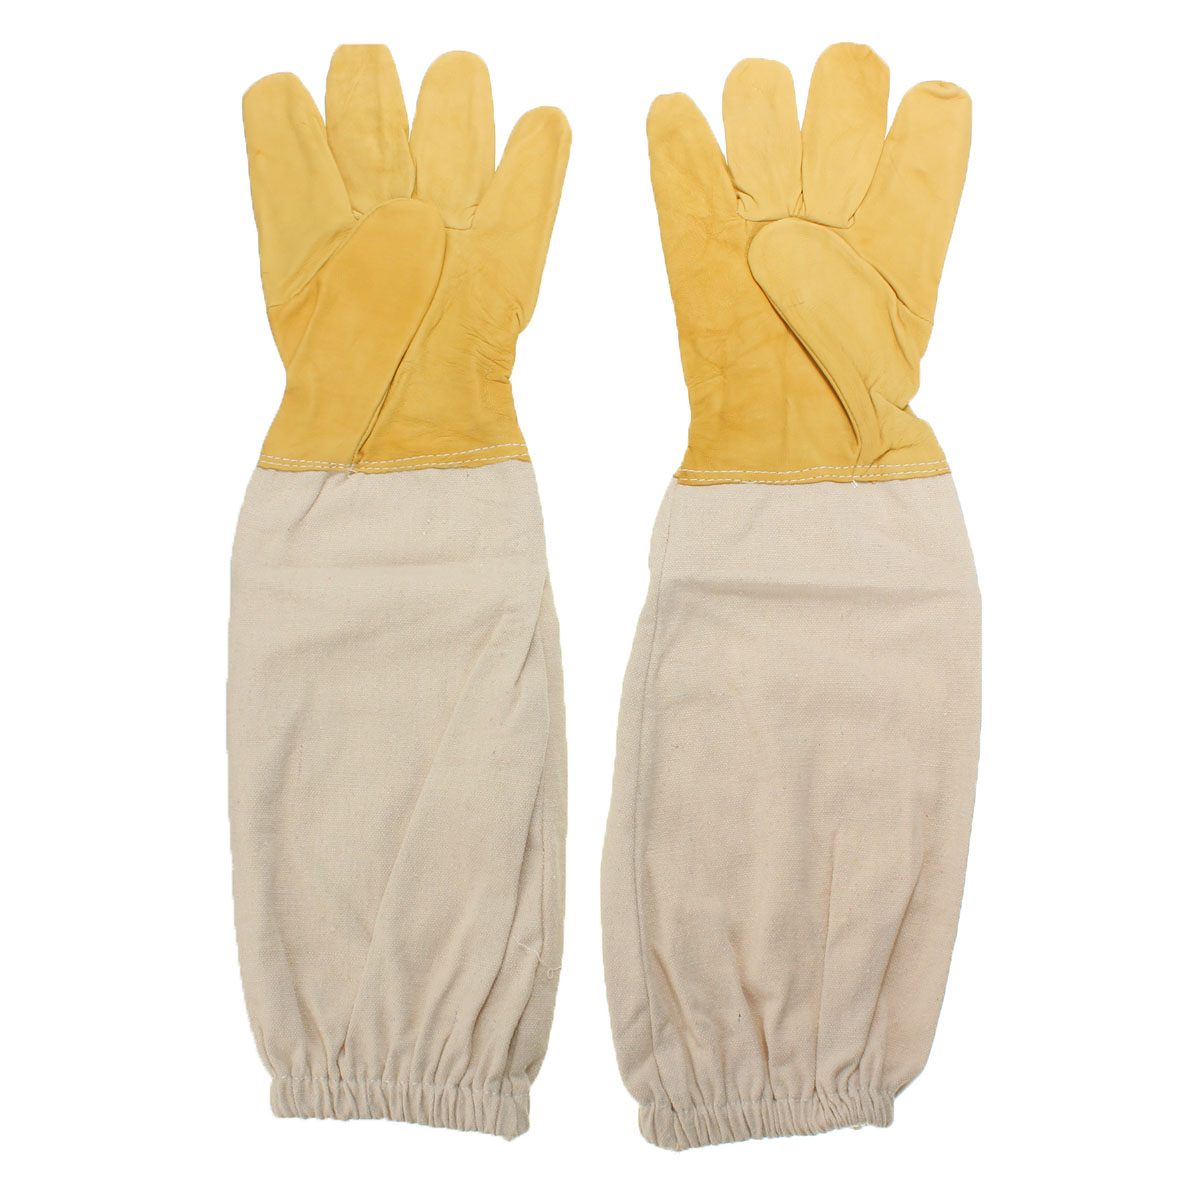 Yellow and white Pair Beekeeping Goatskin Cape Gloves XXL Sheepskin W/ Vented Long Sleeves Guard New угловая шлифмашина prorab 9216 slim page 2